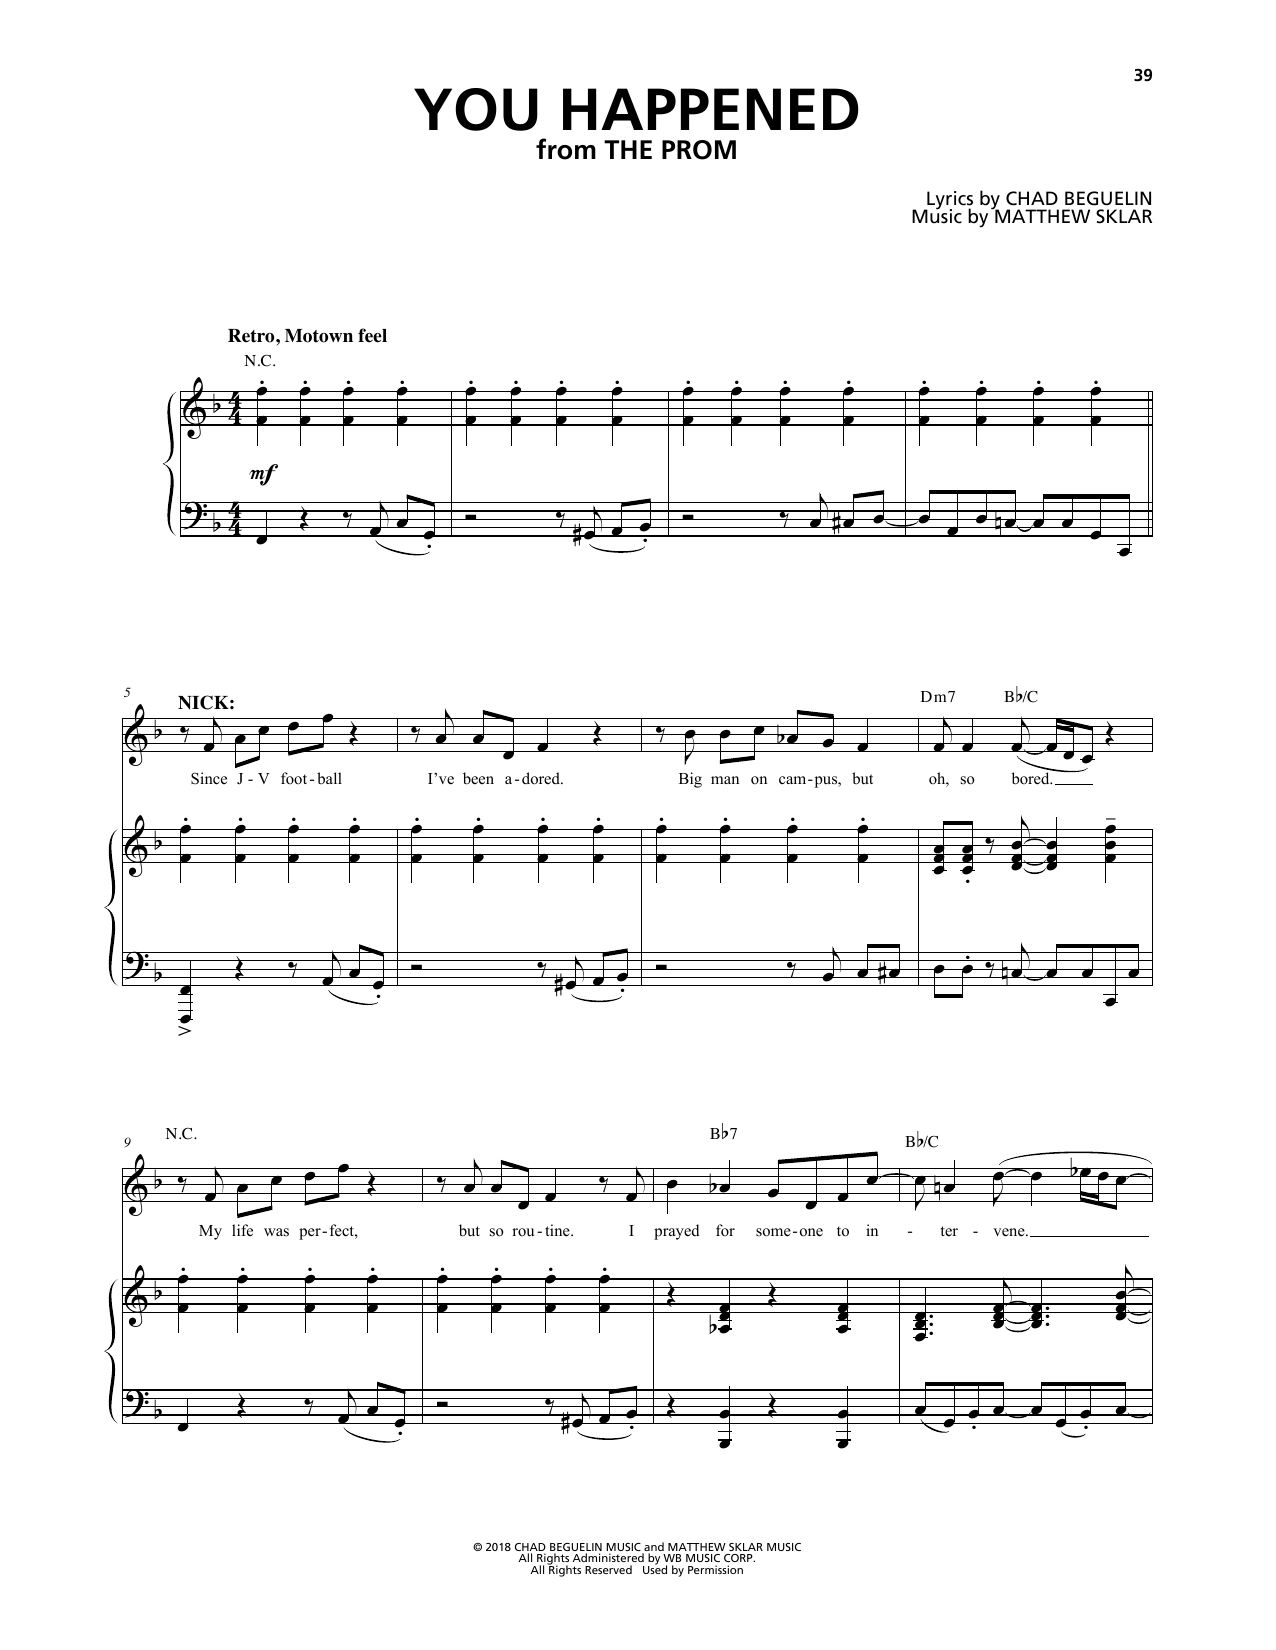 Matthew Sklar & Chad Beguelin You Happened (from The Prom: A New Musical) sheet music notes and chords. Download Printable PDF.